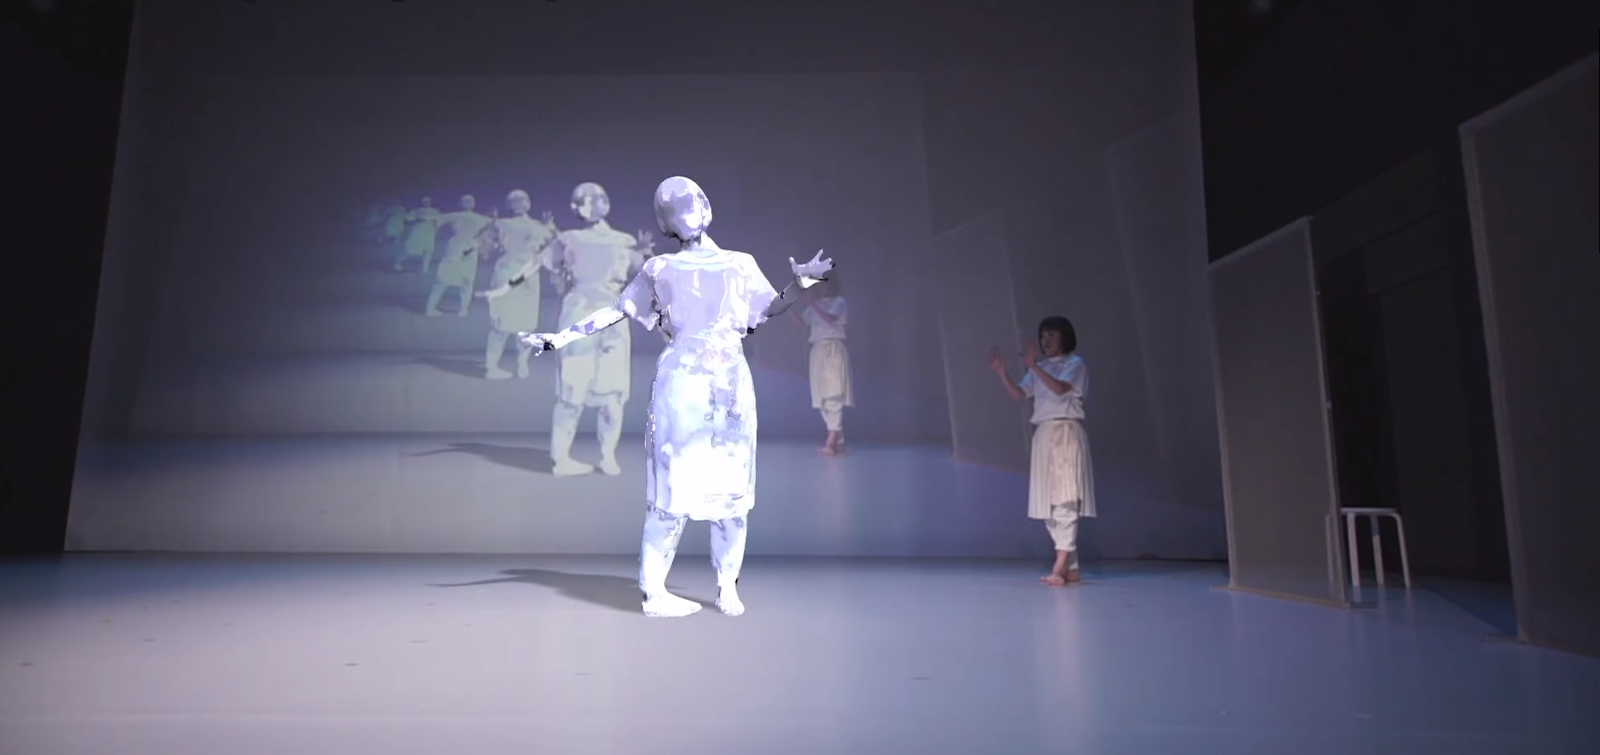 Artificial intelligence, , Intelligence, Theatre, Deep learning, Dance, Music, , Creativity, Performance art, Artificial intelligence, Performance, Performance art, Performing arts, Stage, Fashion, Choreography, Event, Dance, Scene, Musical theatre